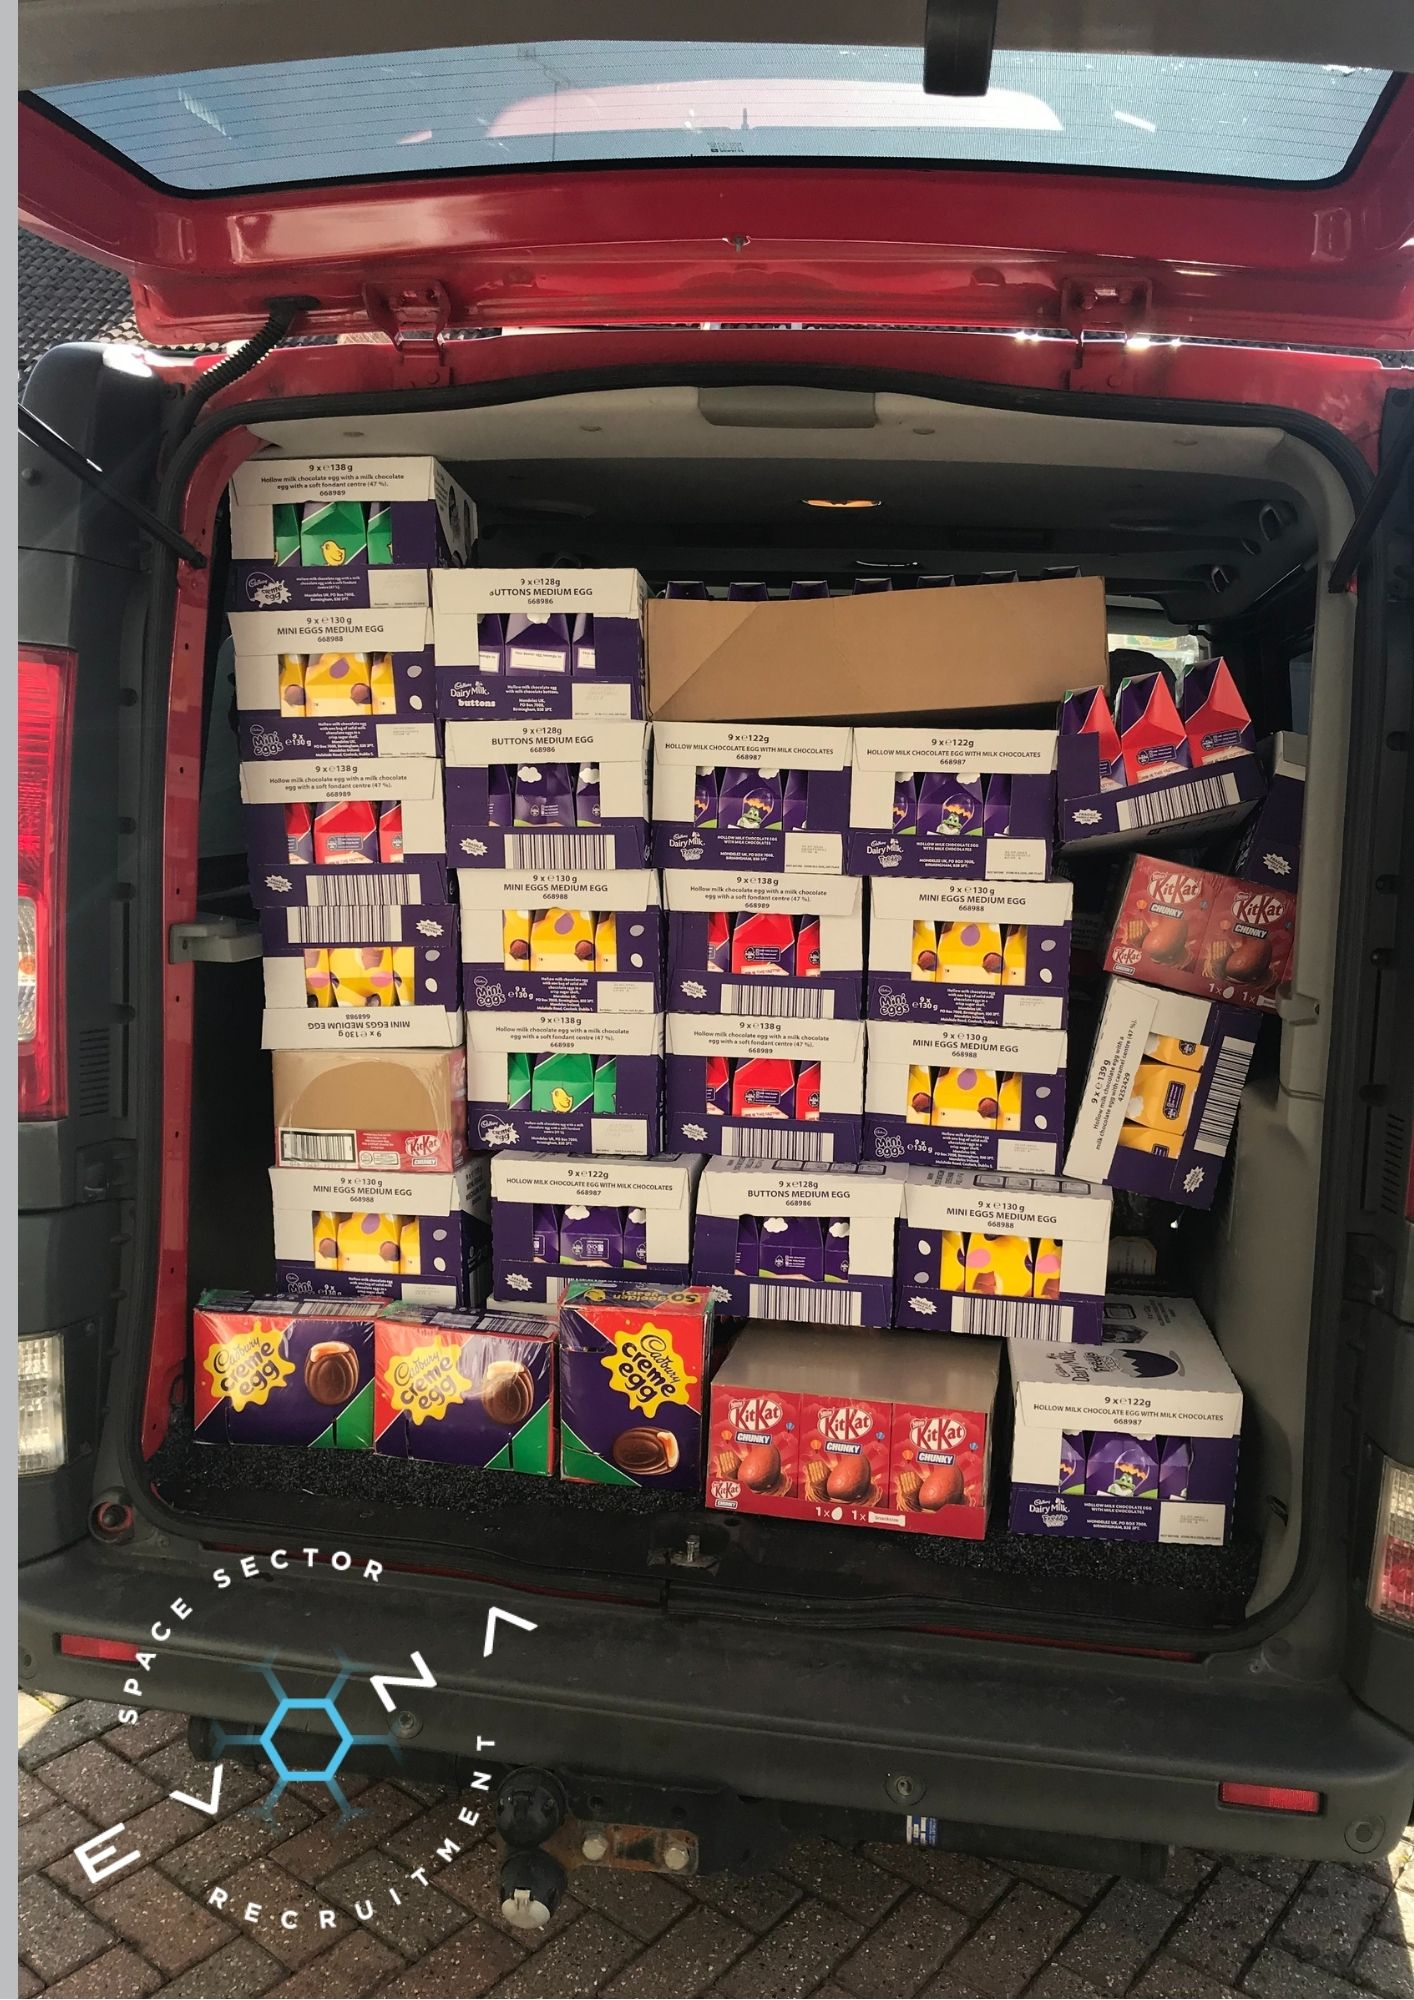 Family food 4 Free an boot loaded with Easter eggs!